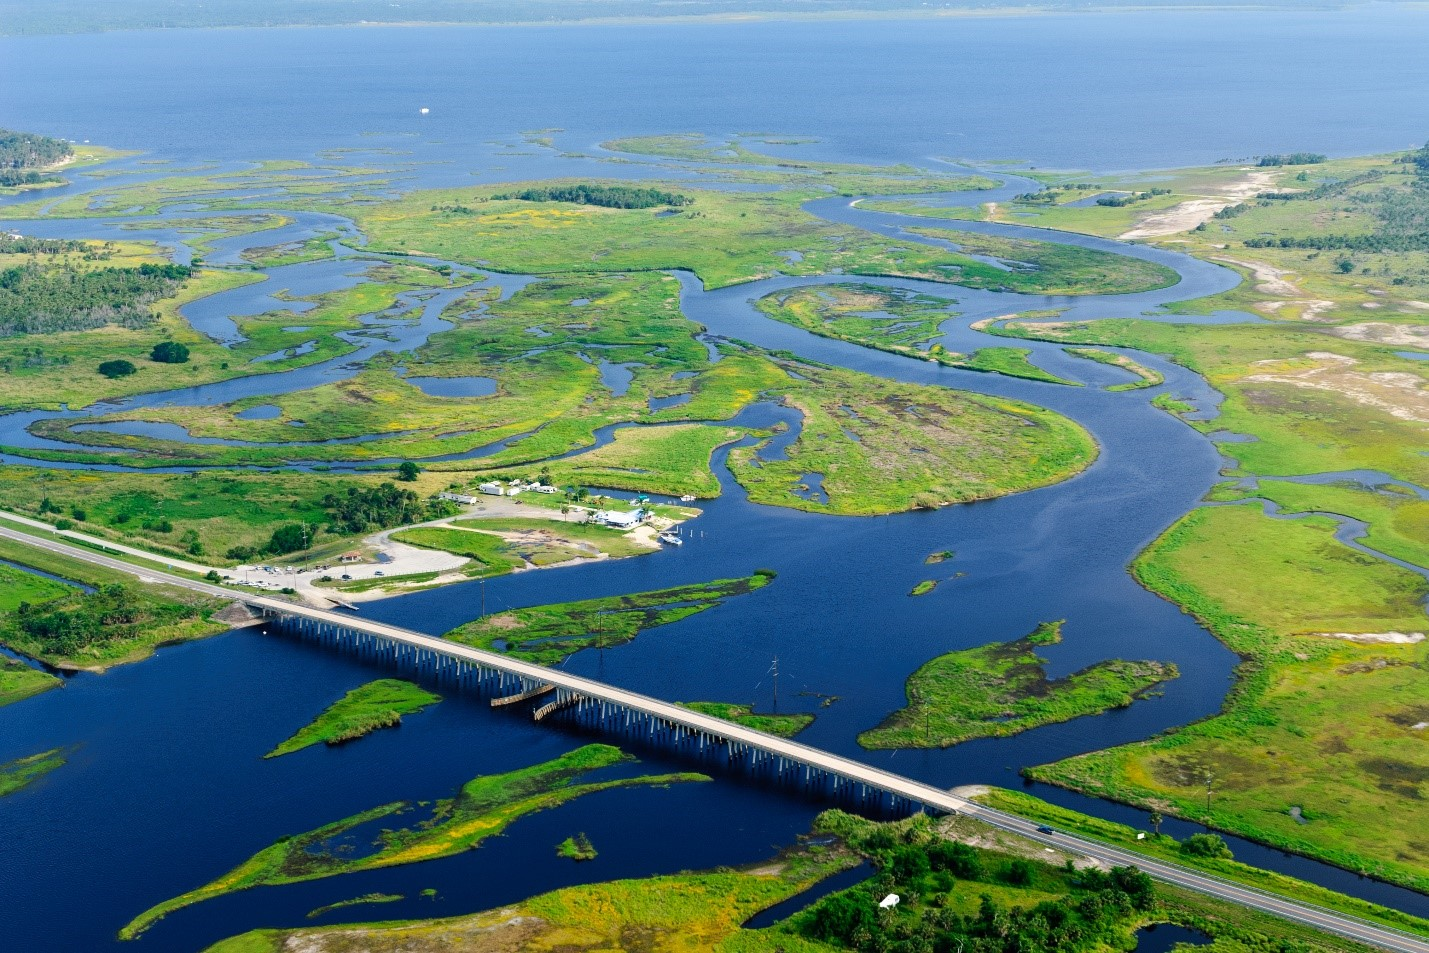 Aerial photo of St. Johns River flowing into Lake Harney